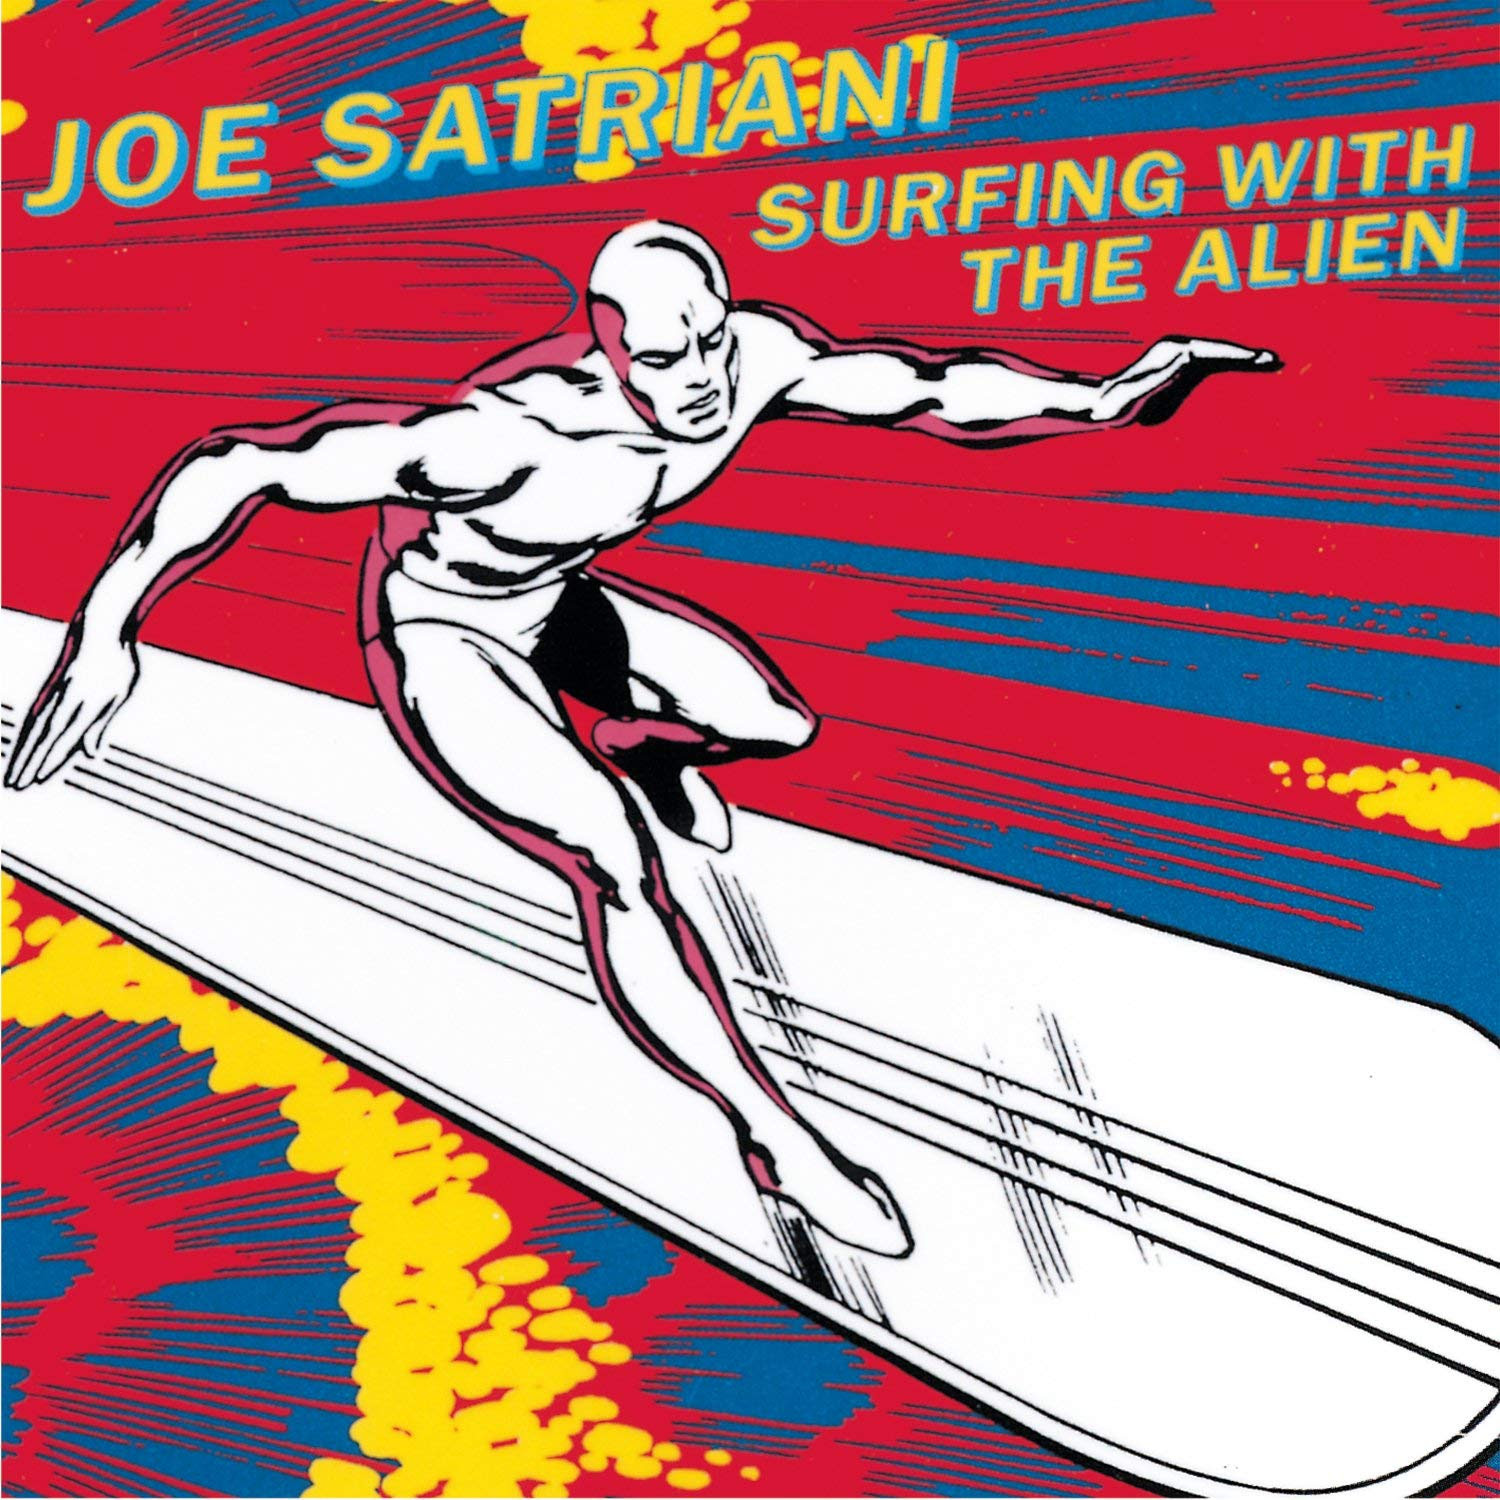 Surfing With The Alien Cover Joe Satriani - Always with me, always with you